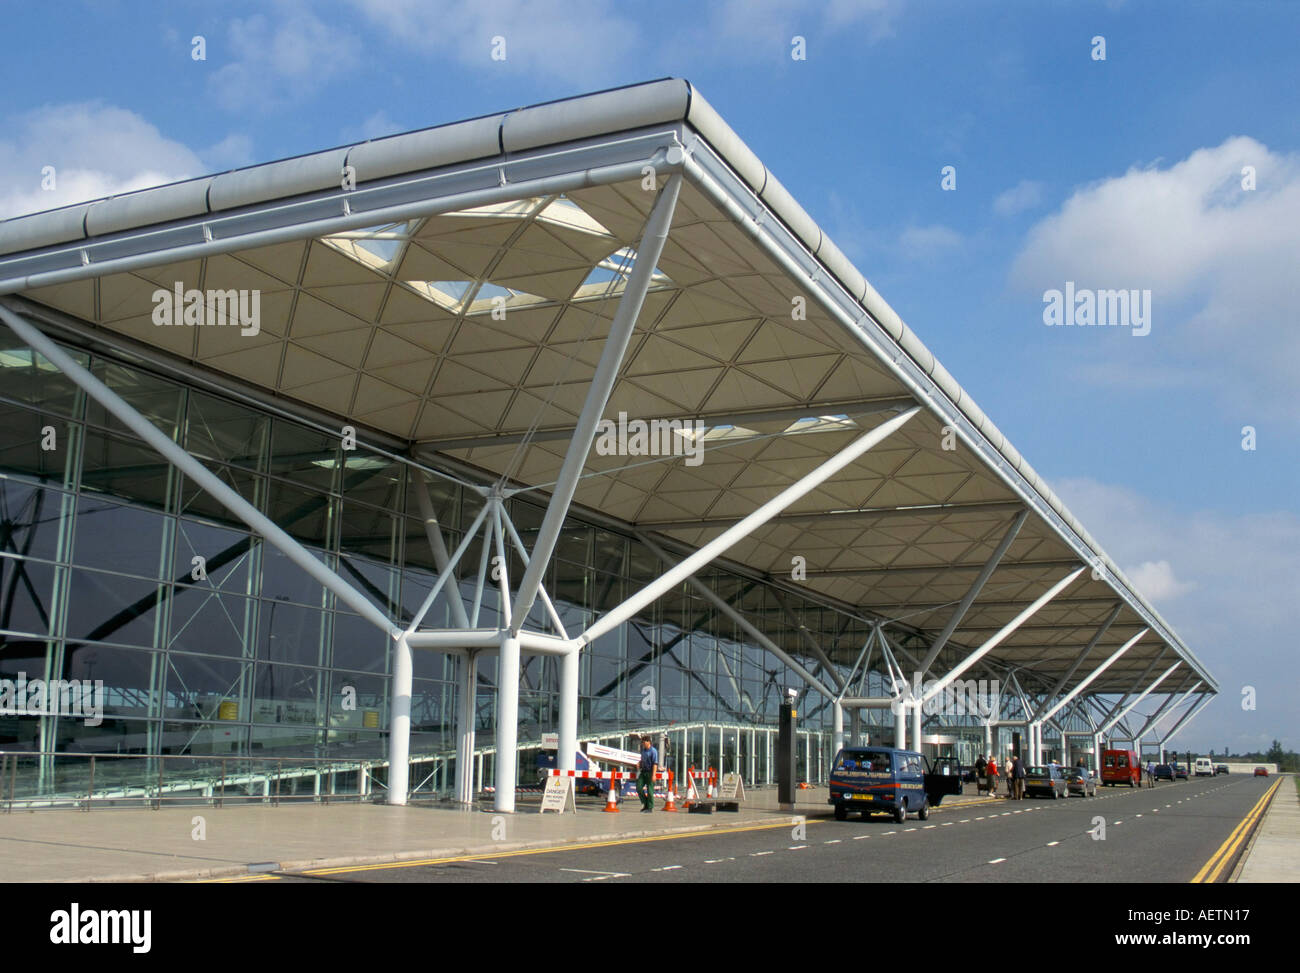 Essex United Kingdom  City pictures : ... Stansted Airport terminal Stansted Essex England United Kingdom Europe